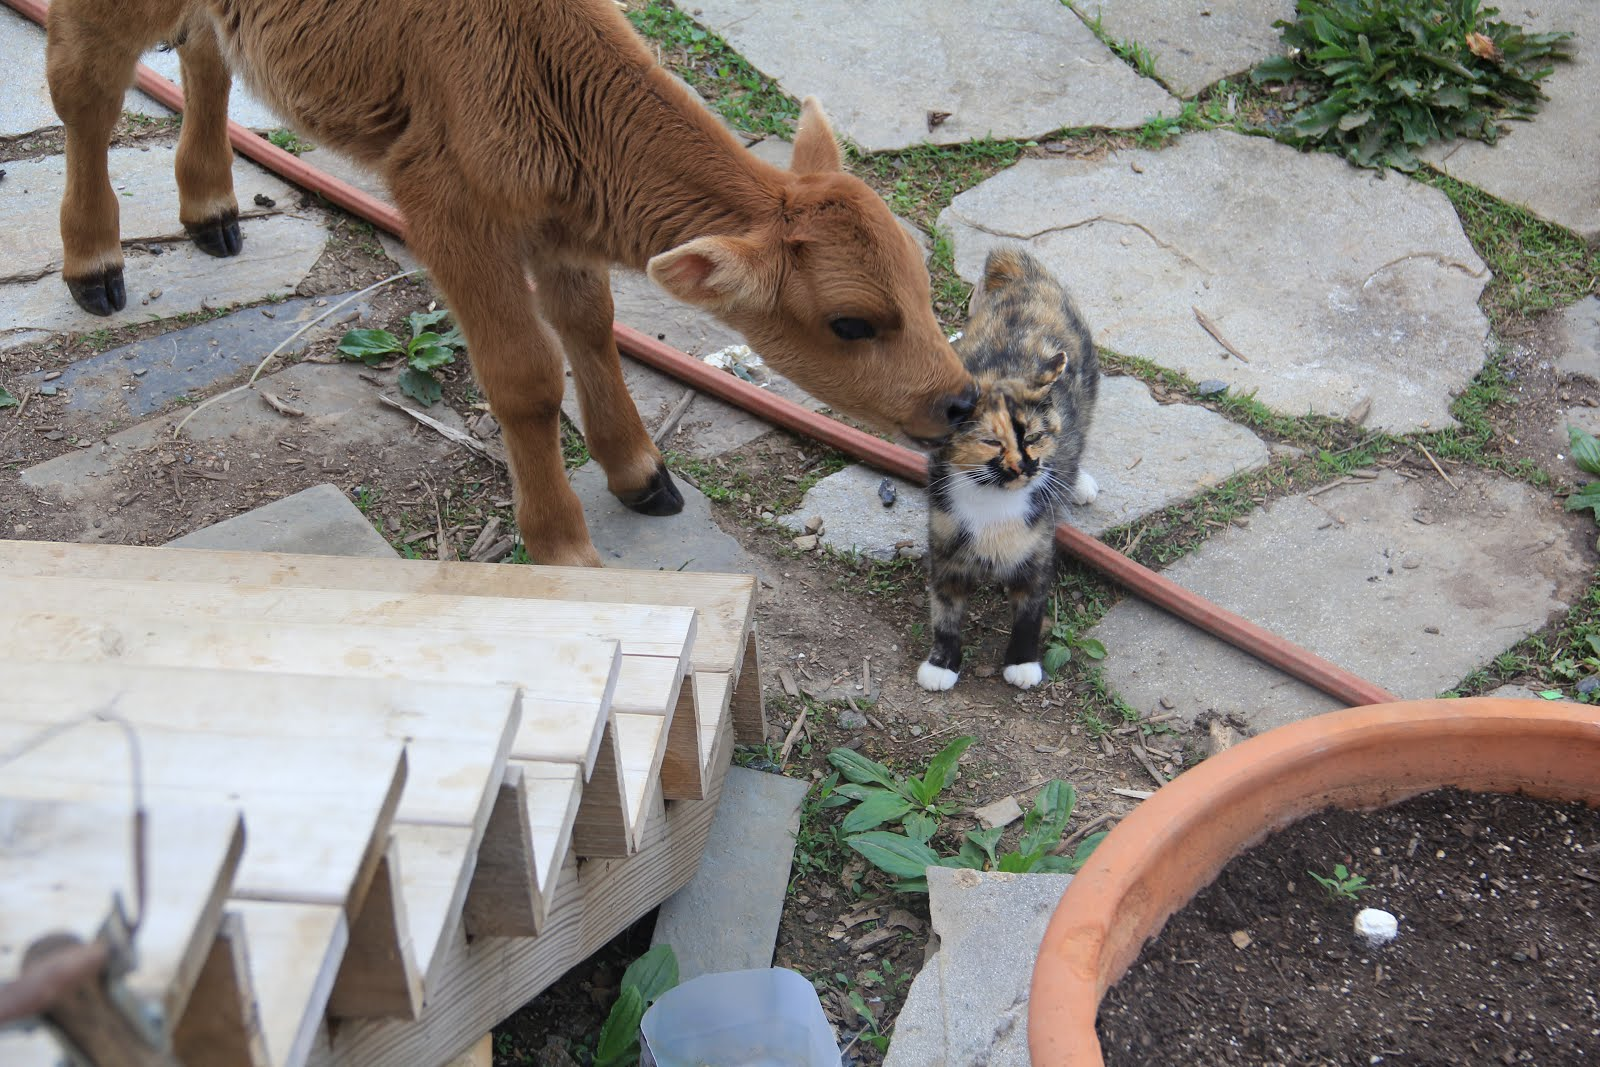 Calf and Cat!